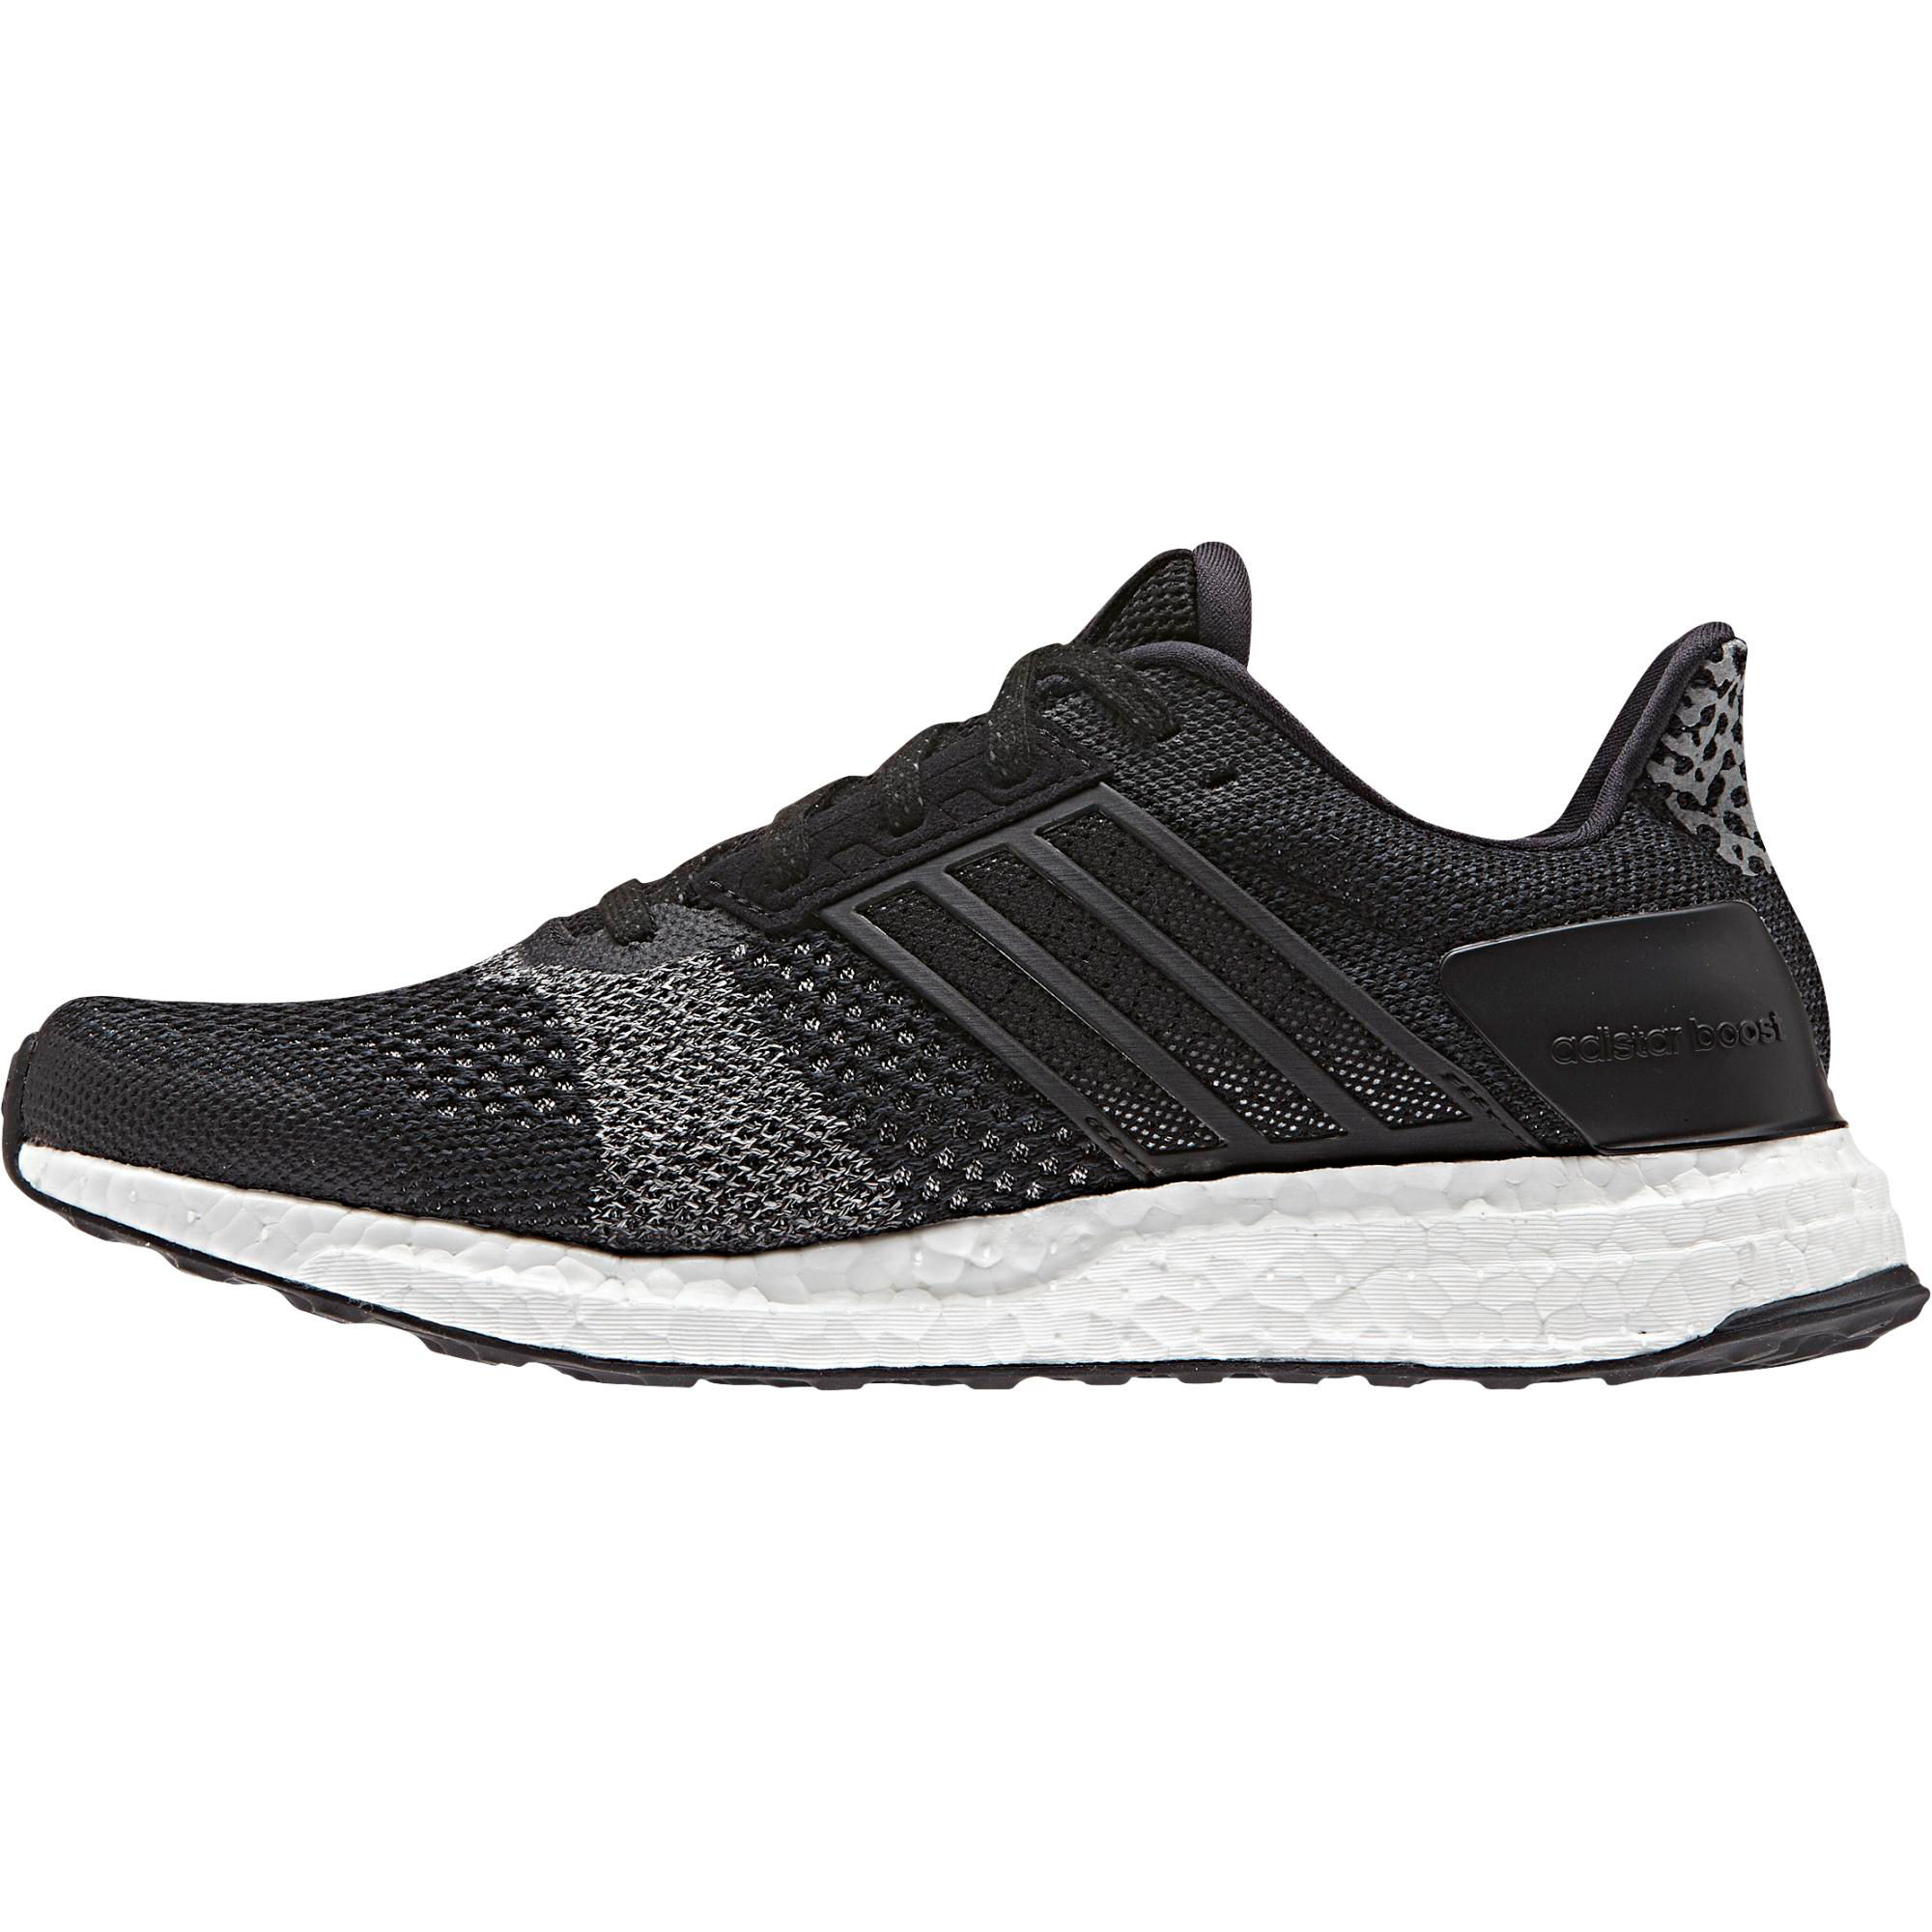 Adidas Ultra Boost Female